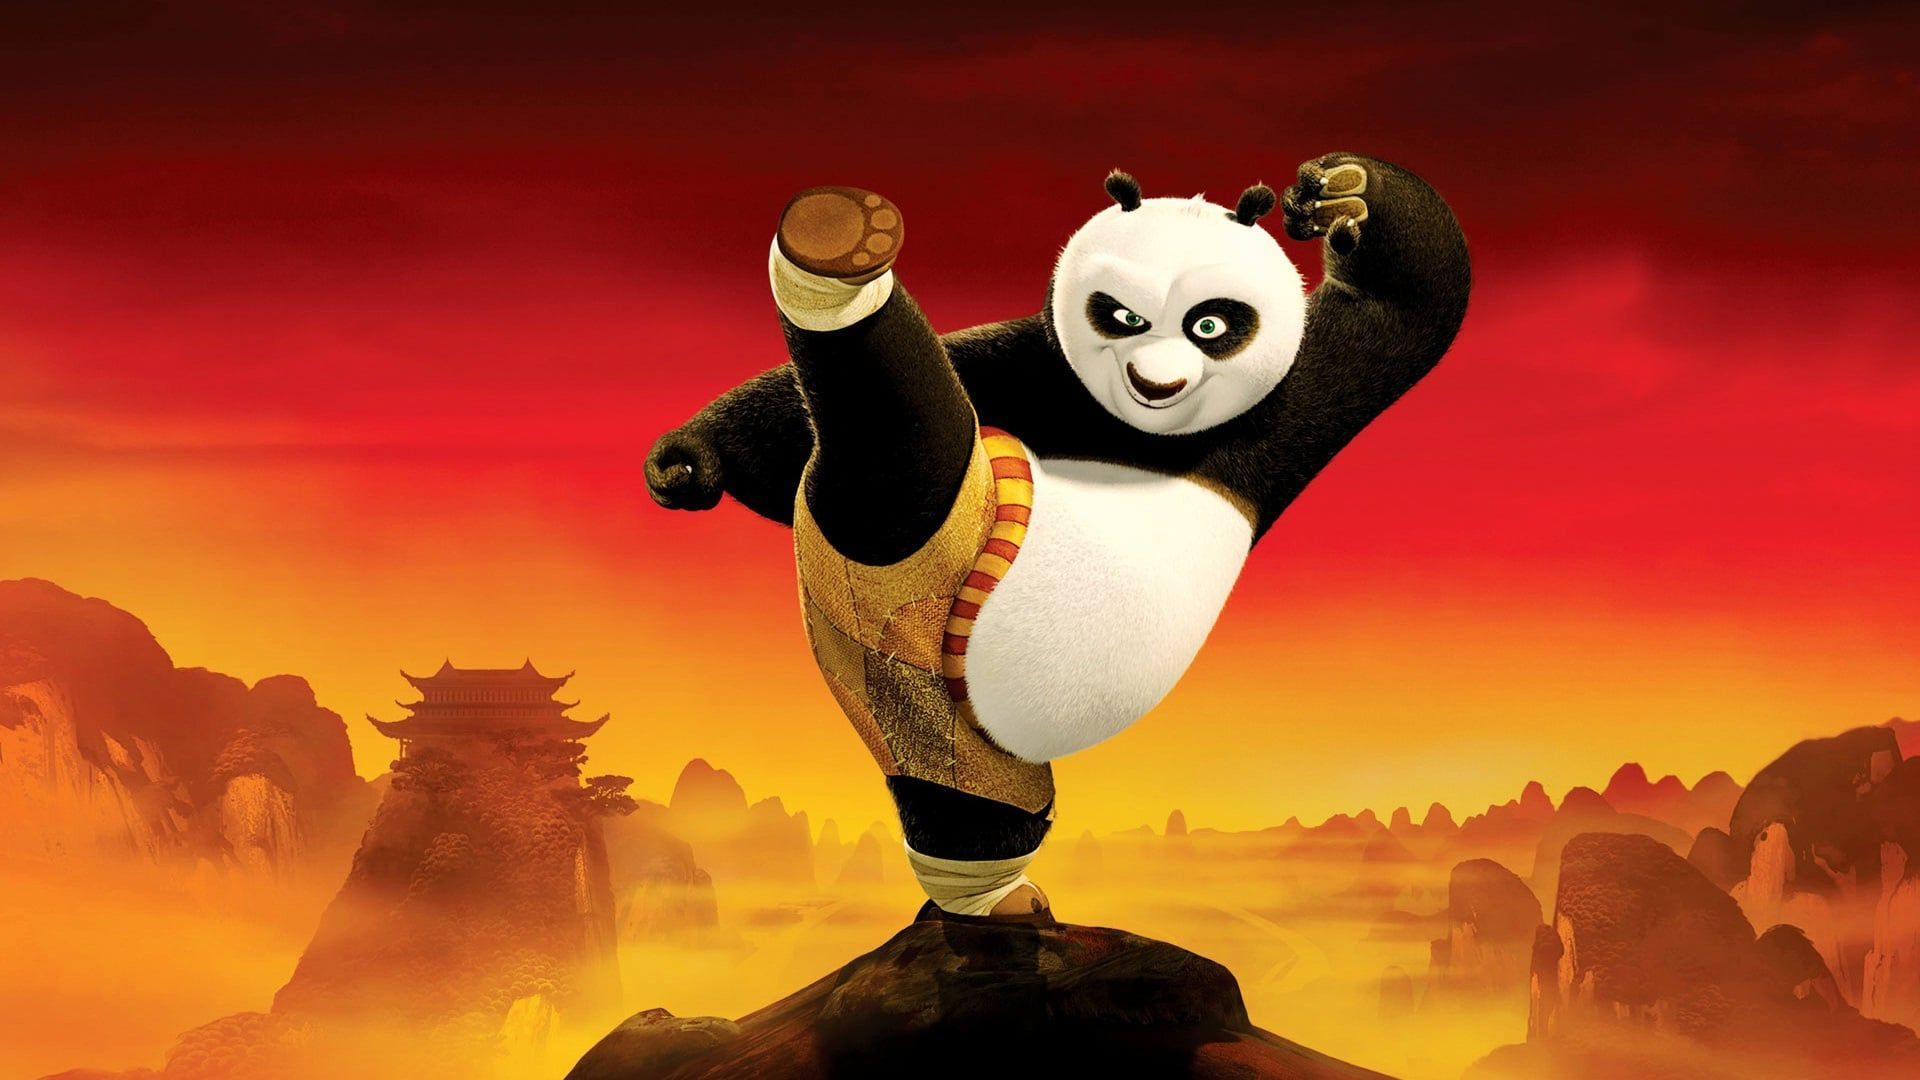 Kung Fu Panda Wallpapers HD 1920x1080 3 39